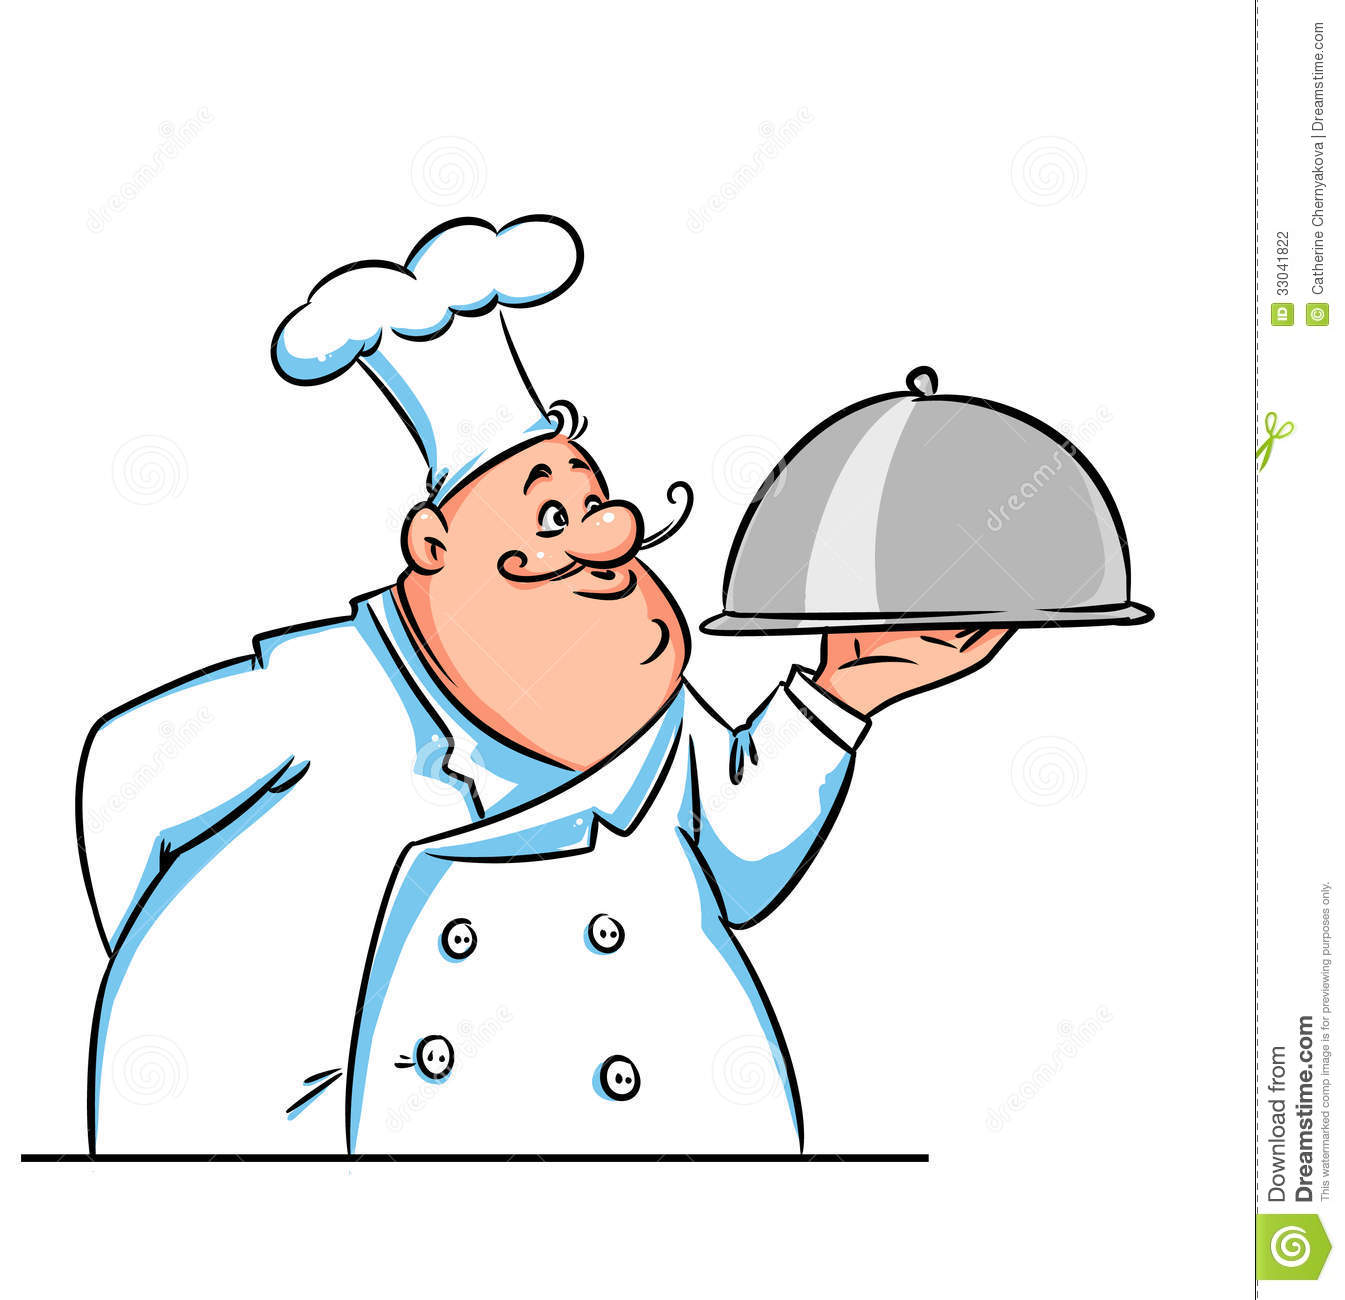 Cook Big Illustration Cartoon Stock Photography - Image: 33041822